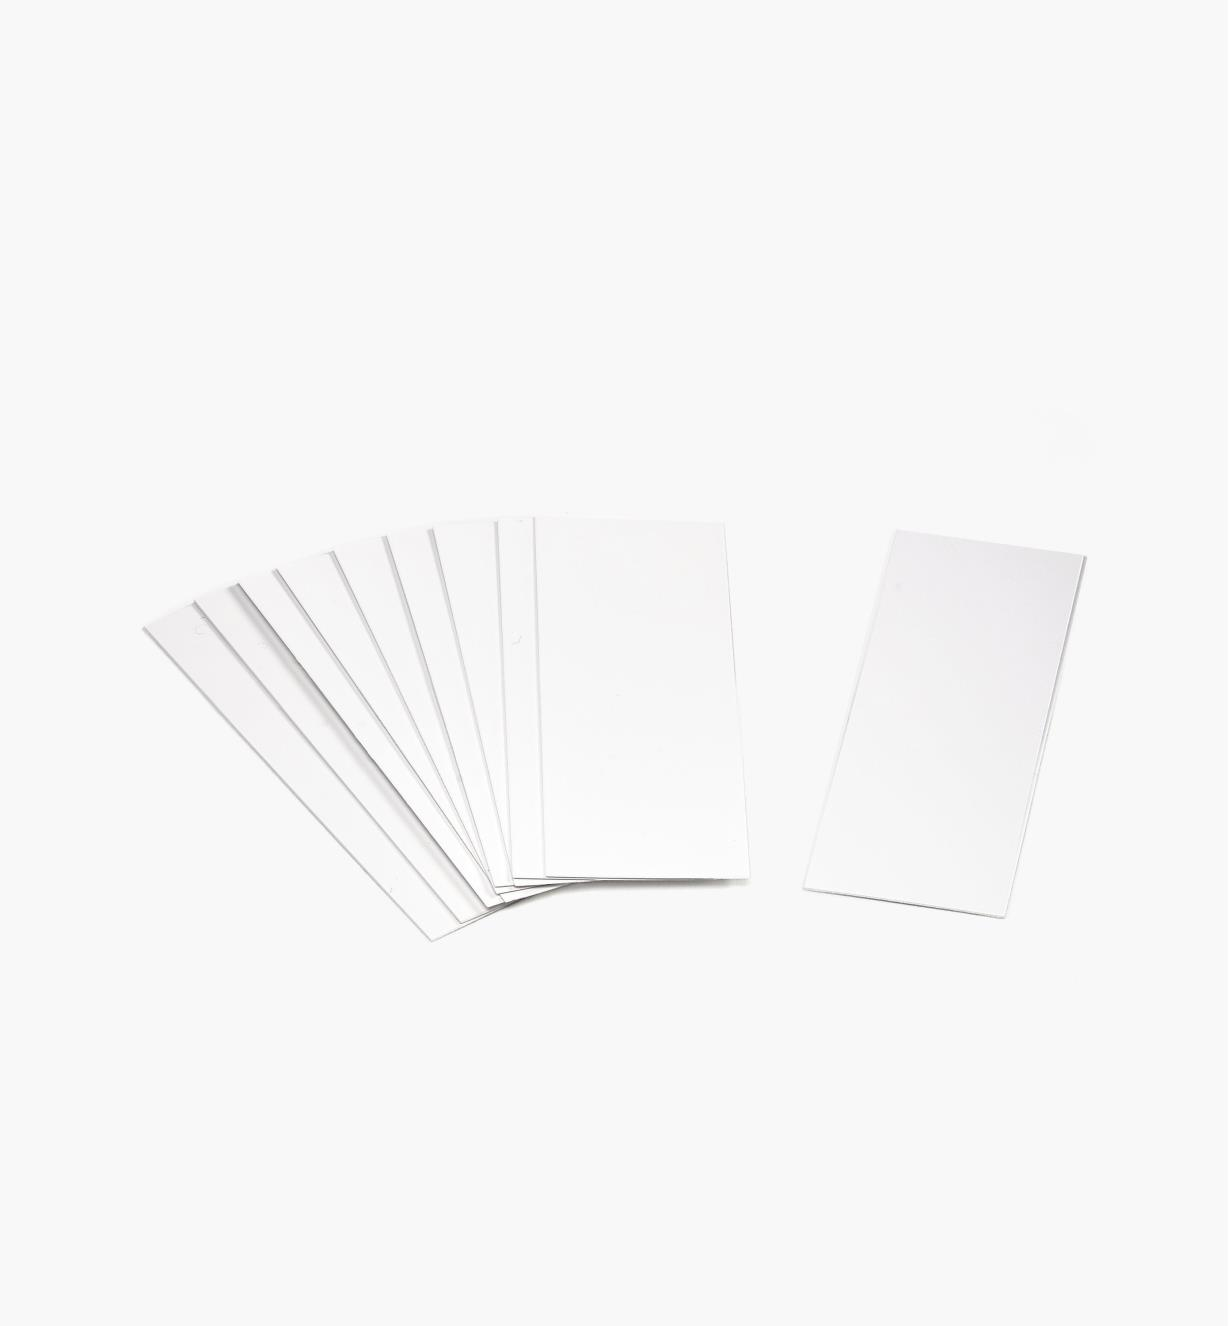 EA609 - Extra Poly Labels, pkg. of 10